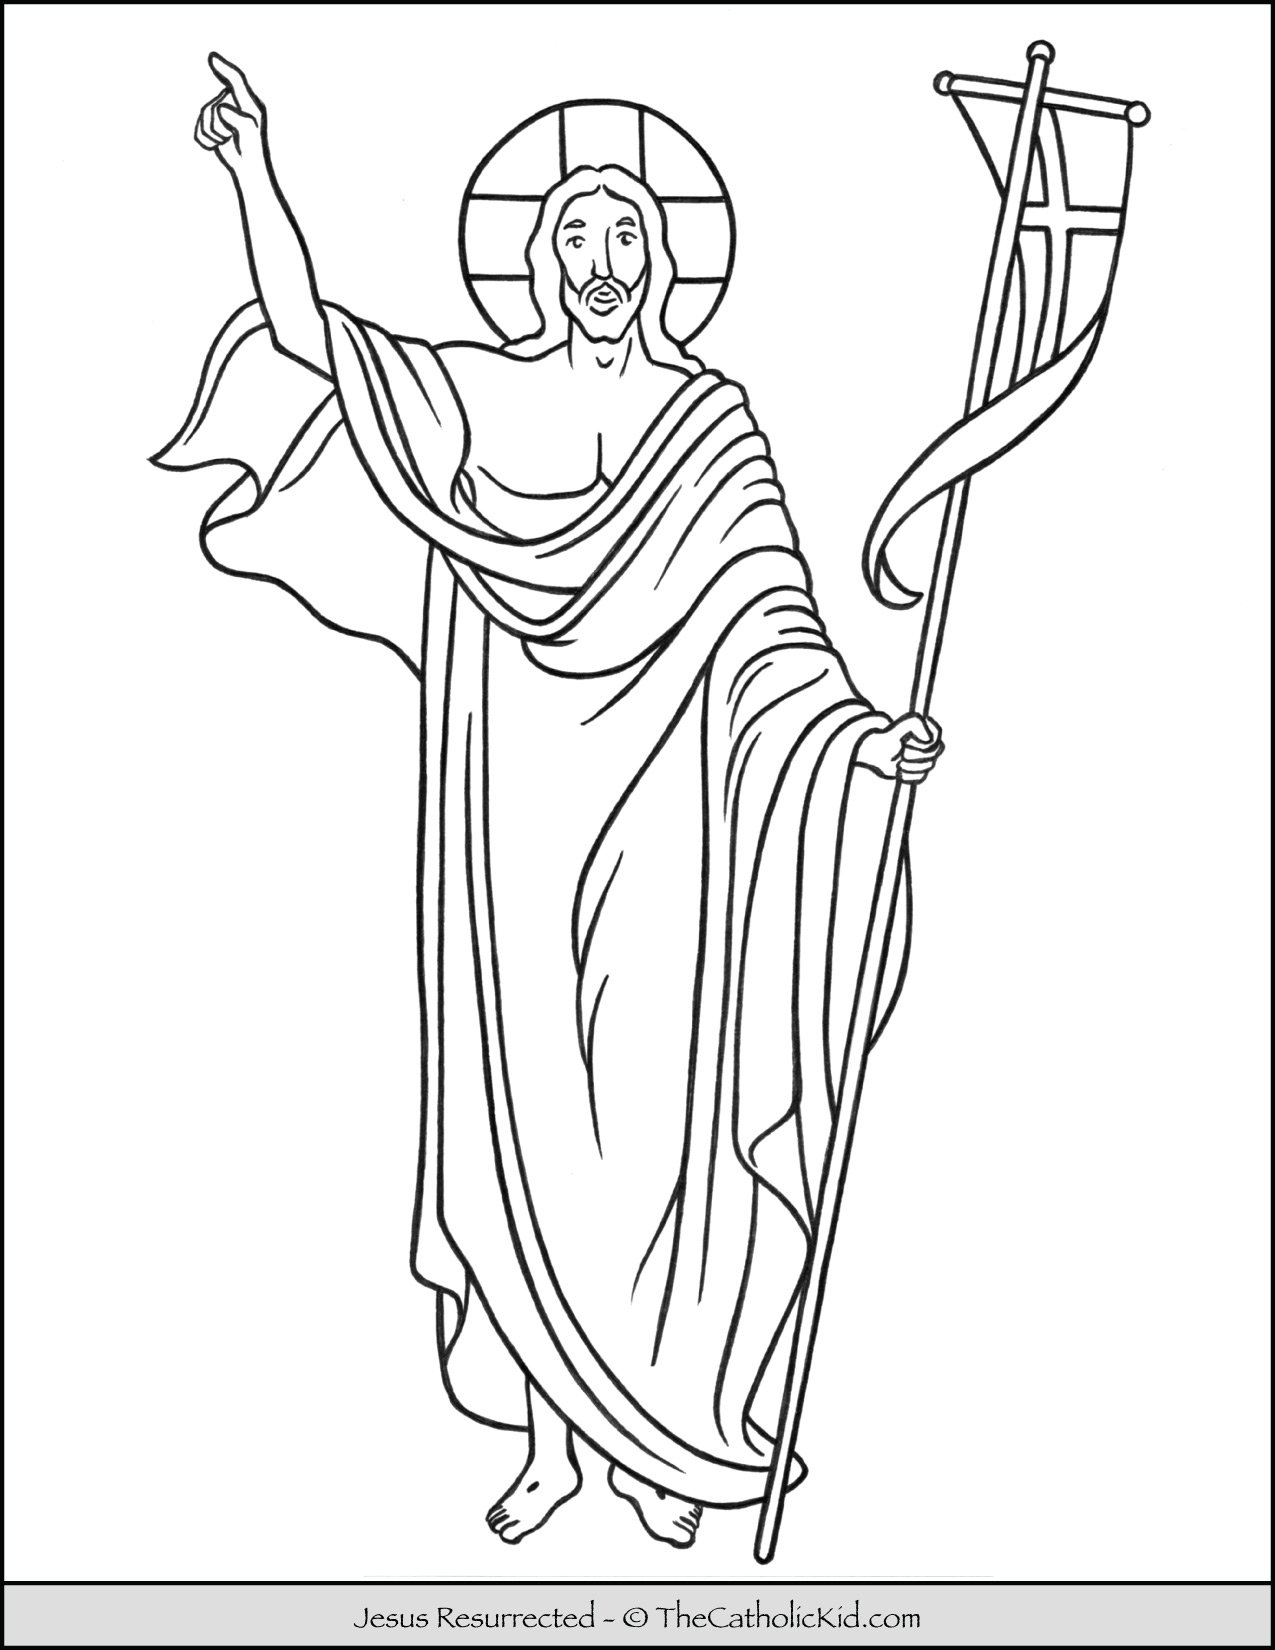 Jesus Resurrected Coloring Page